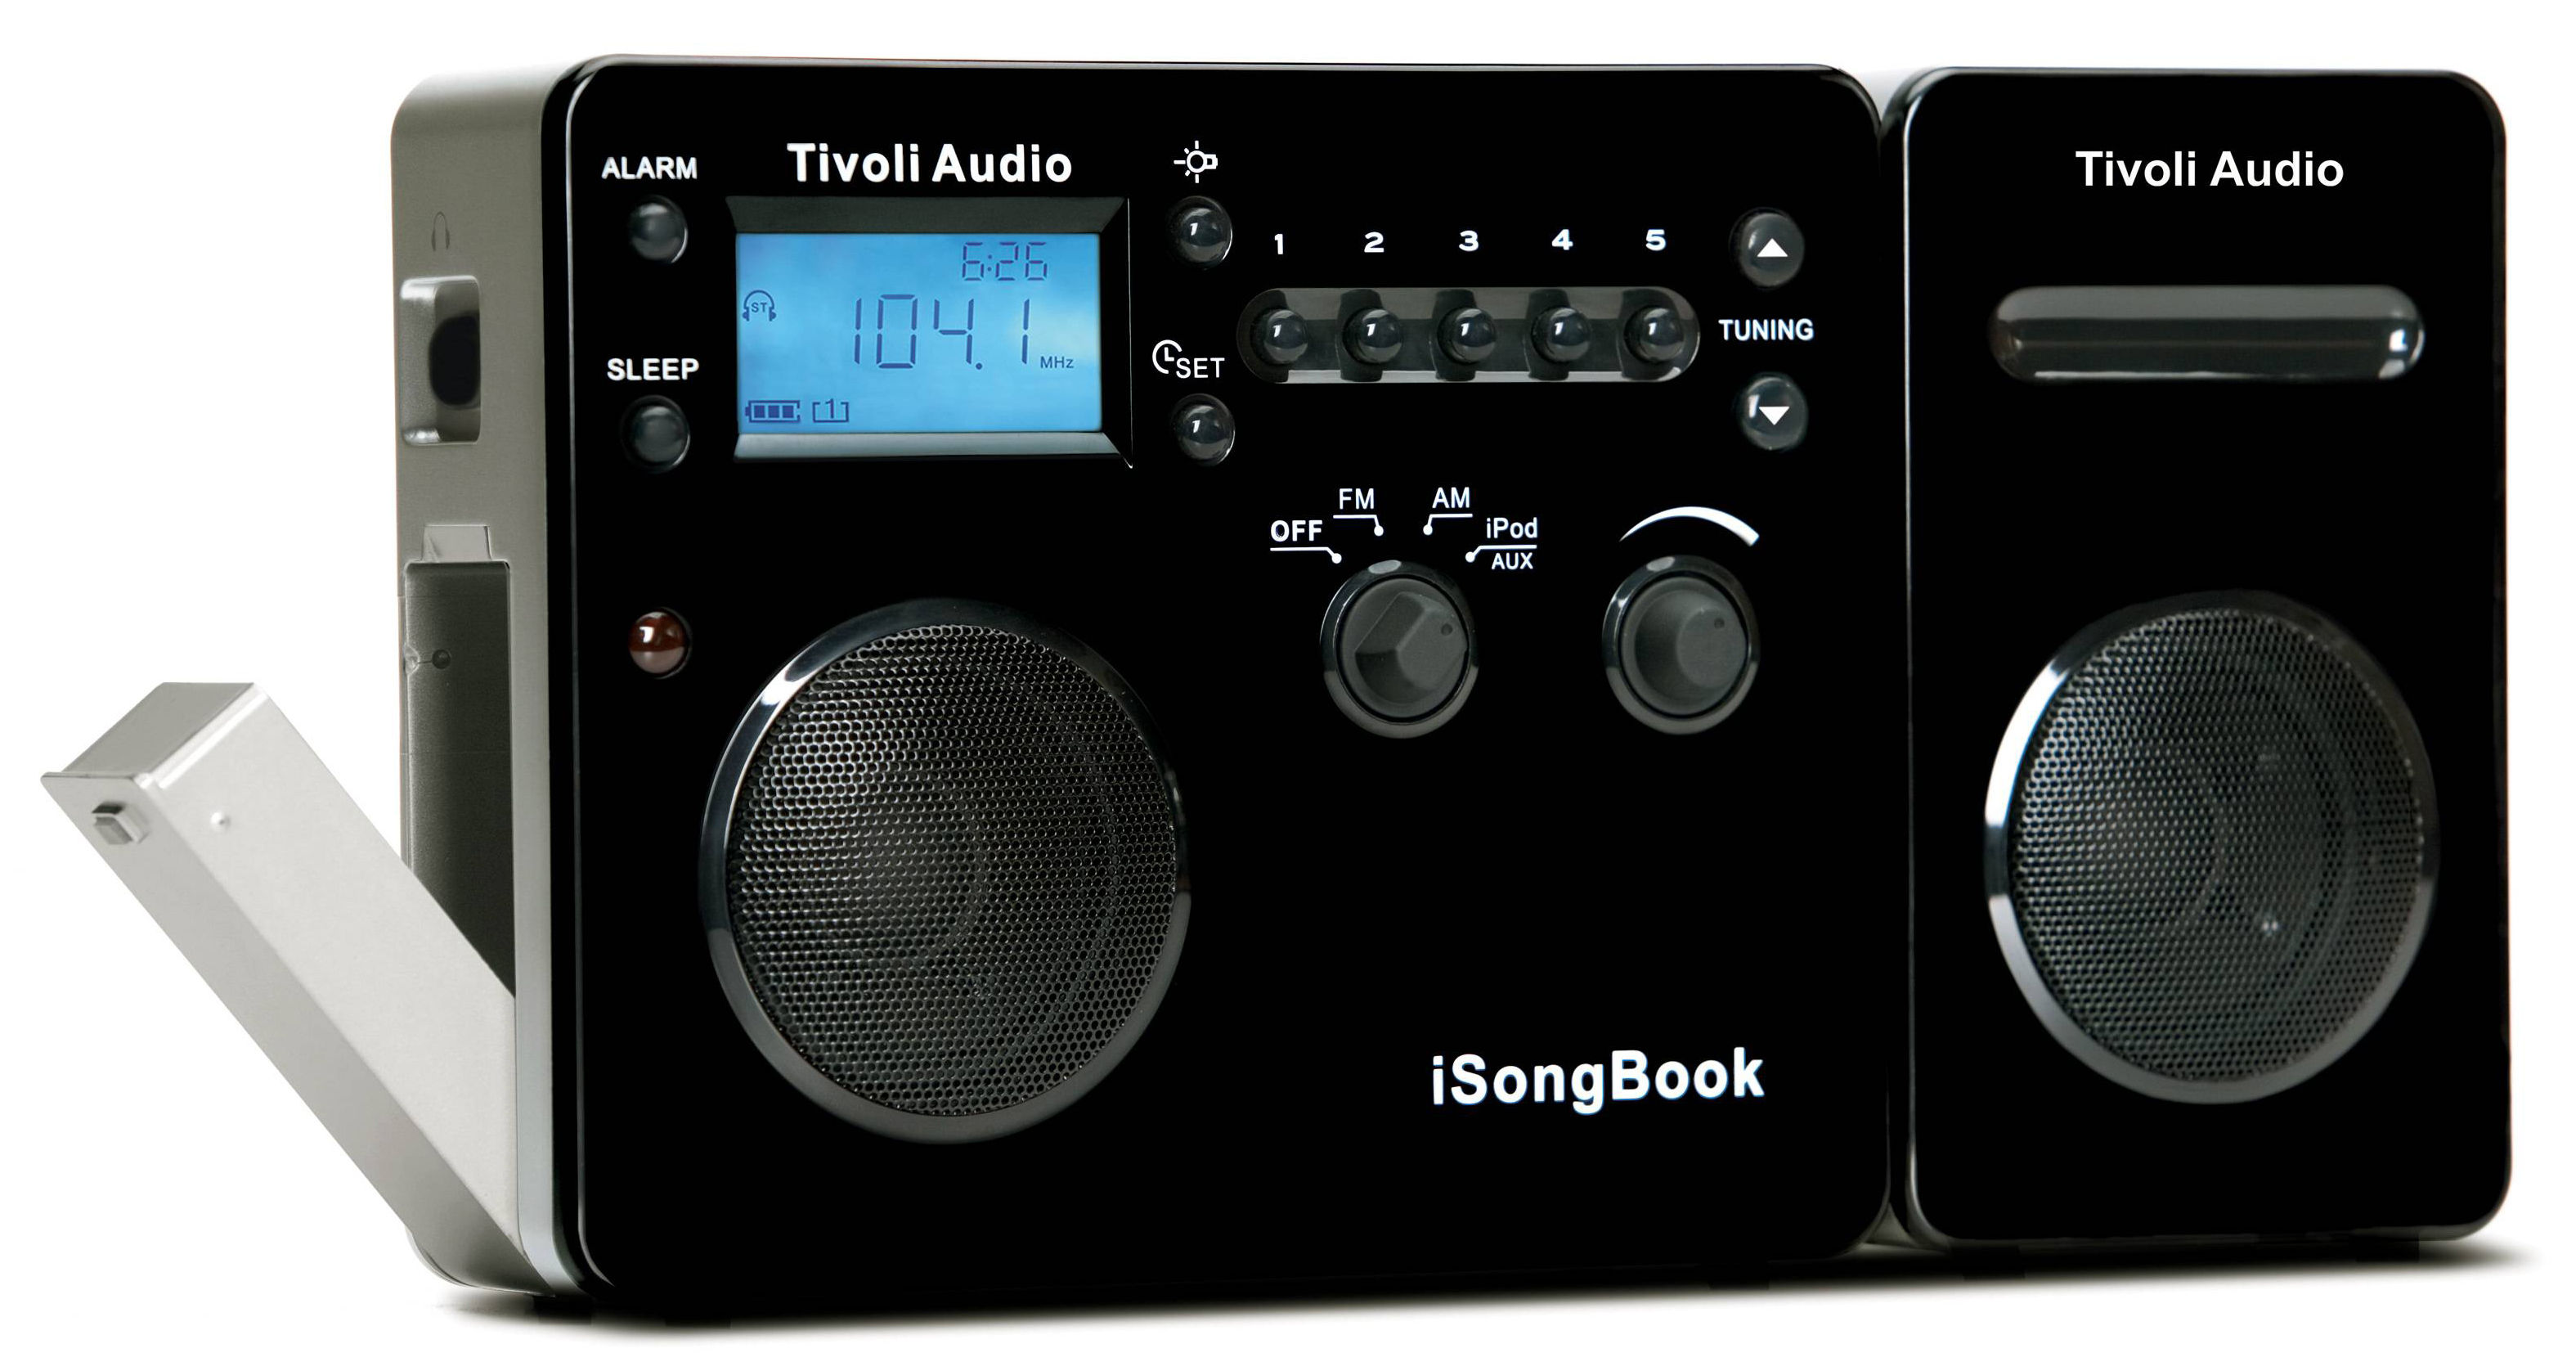 isong book clock radio speaker compatible with ipod. Black Bedroom Furniture Sets. Home Design Ideas